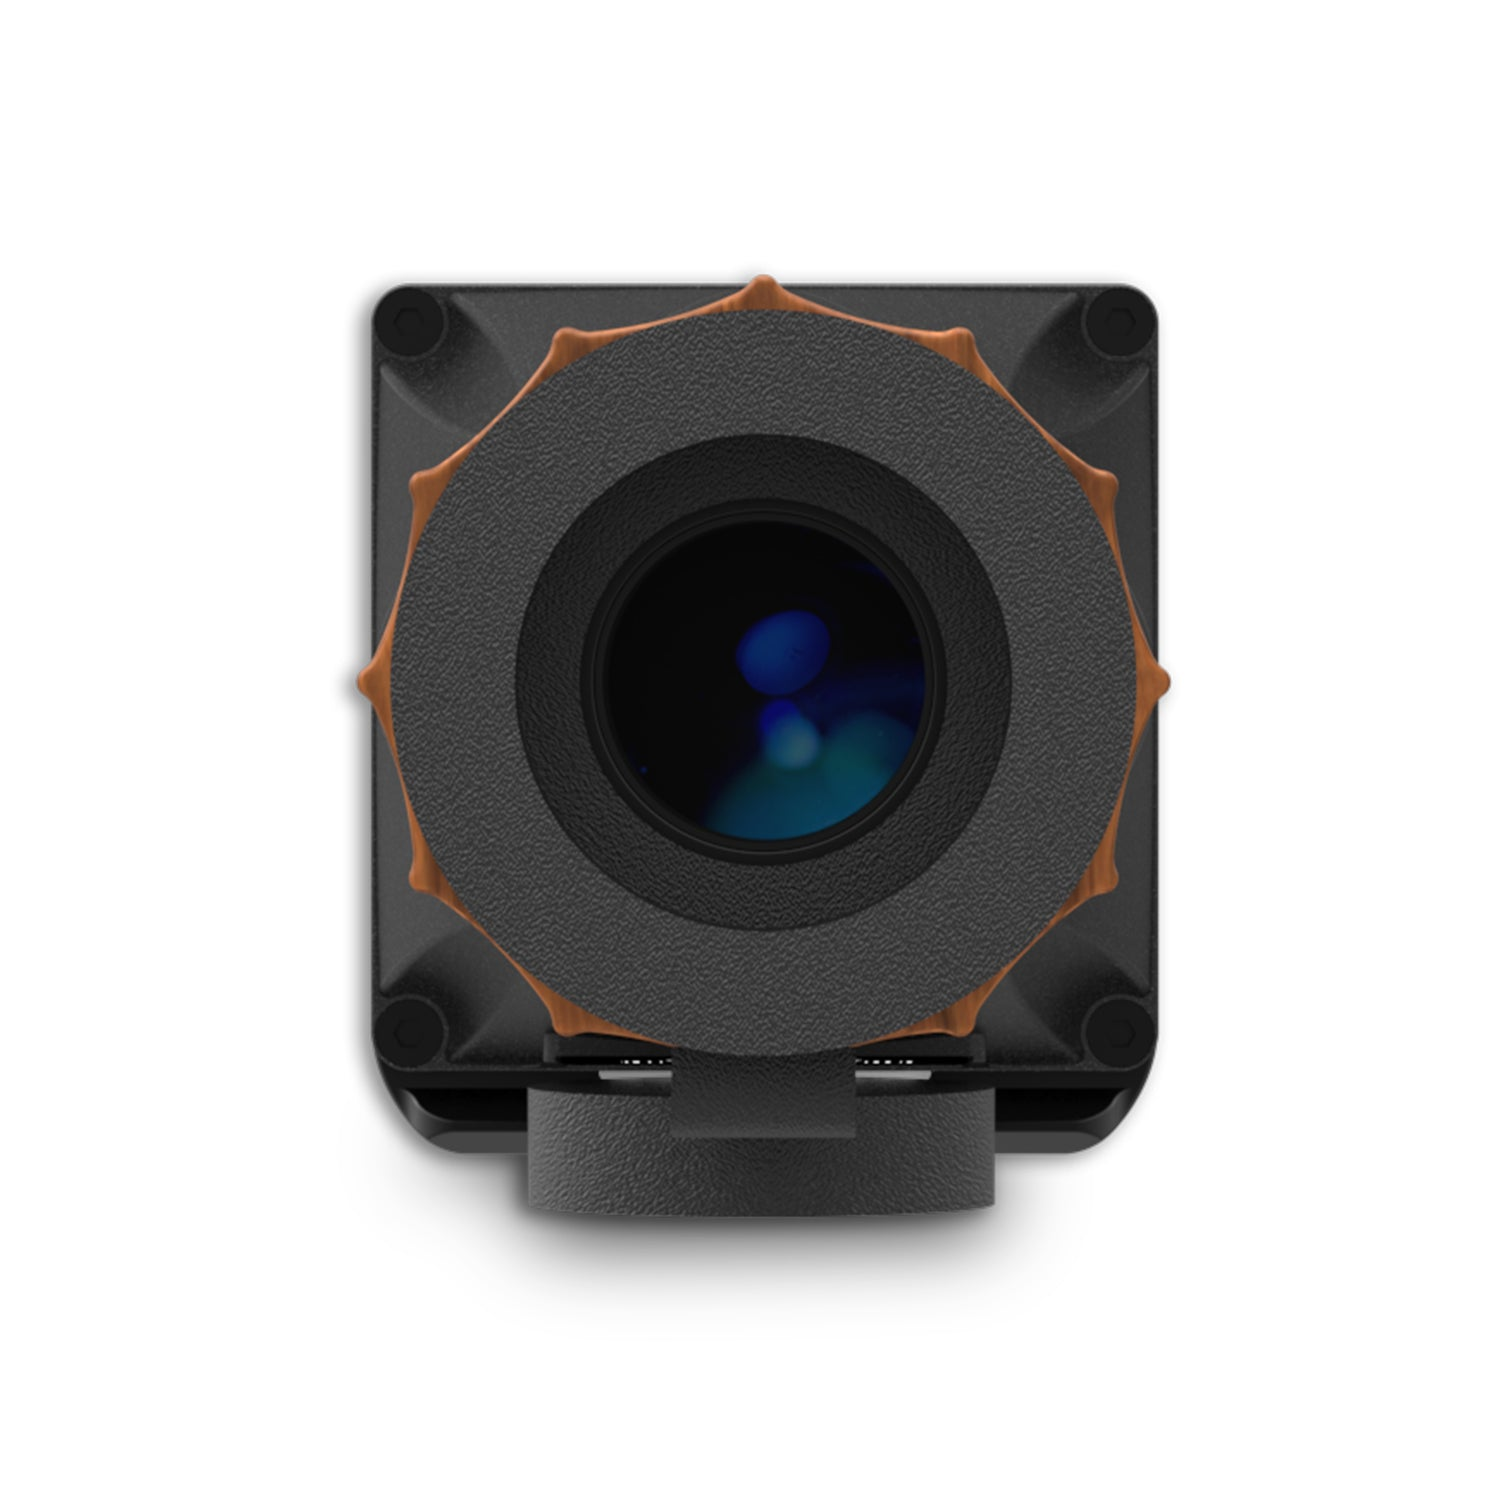 LEYE 4K HDMI ELECTRONIC VIEWFINDER 2.4inch LCD MONITOR